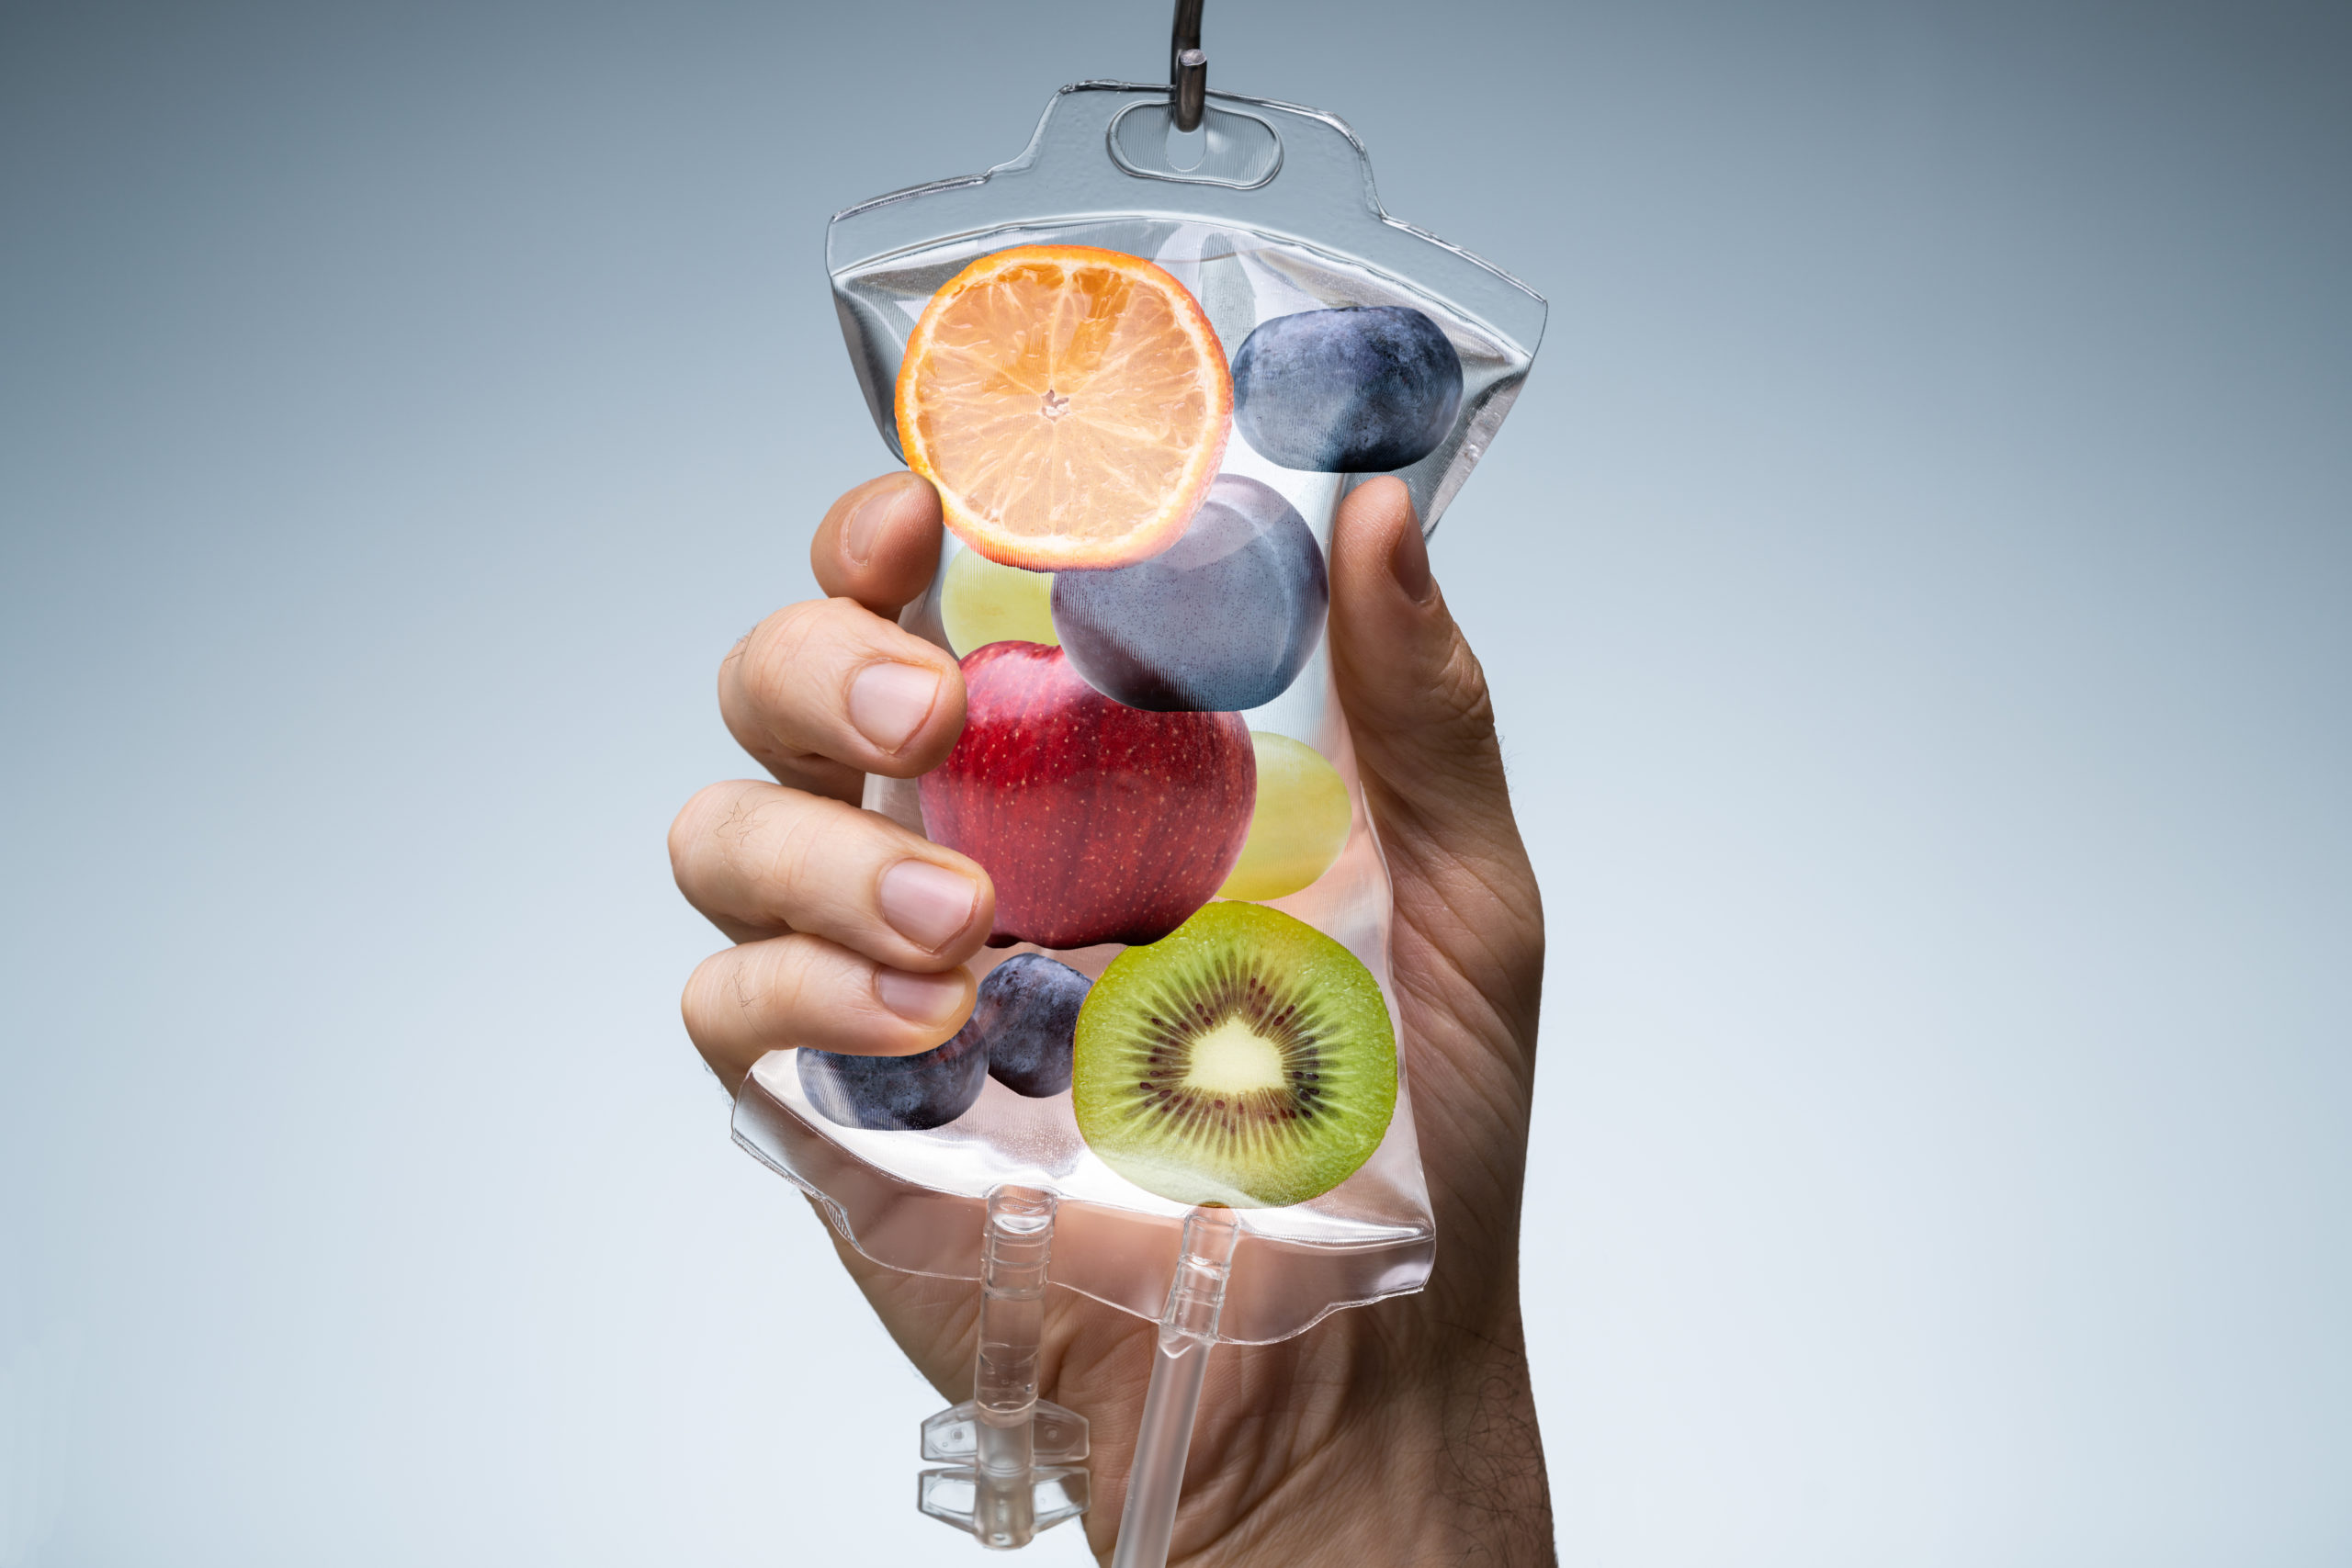 Hand holding saline bag with fruit.